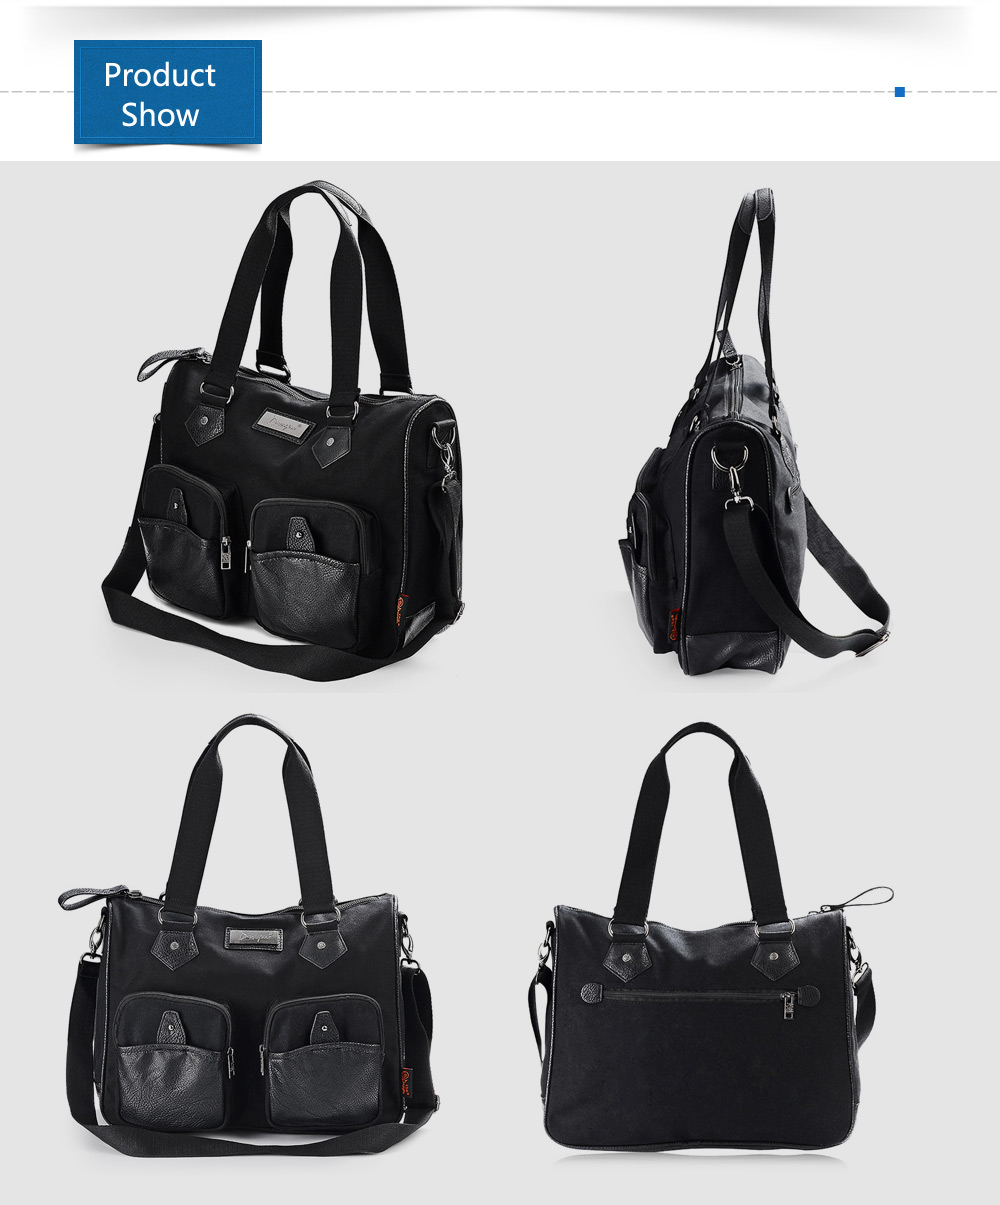 Douguyan 13.7L Sling Bag Canvas PU Splicing Single-shoulder Backpack Handbag